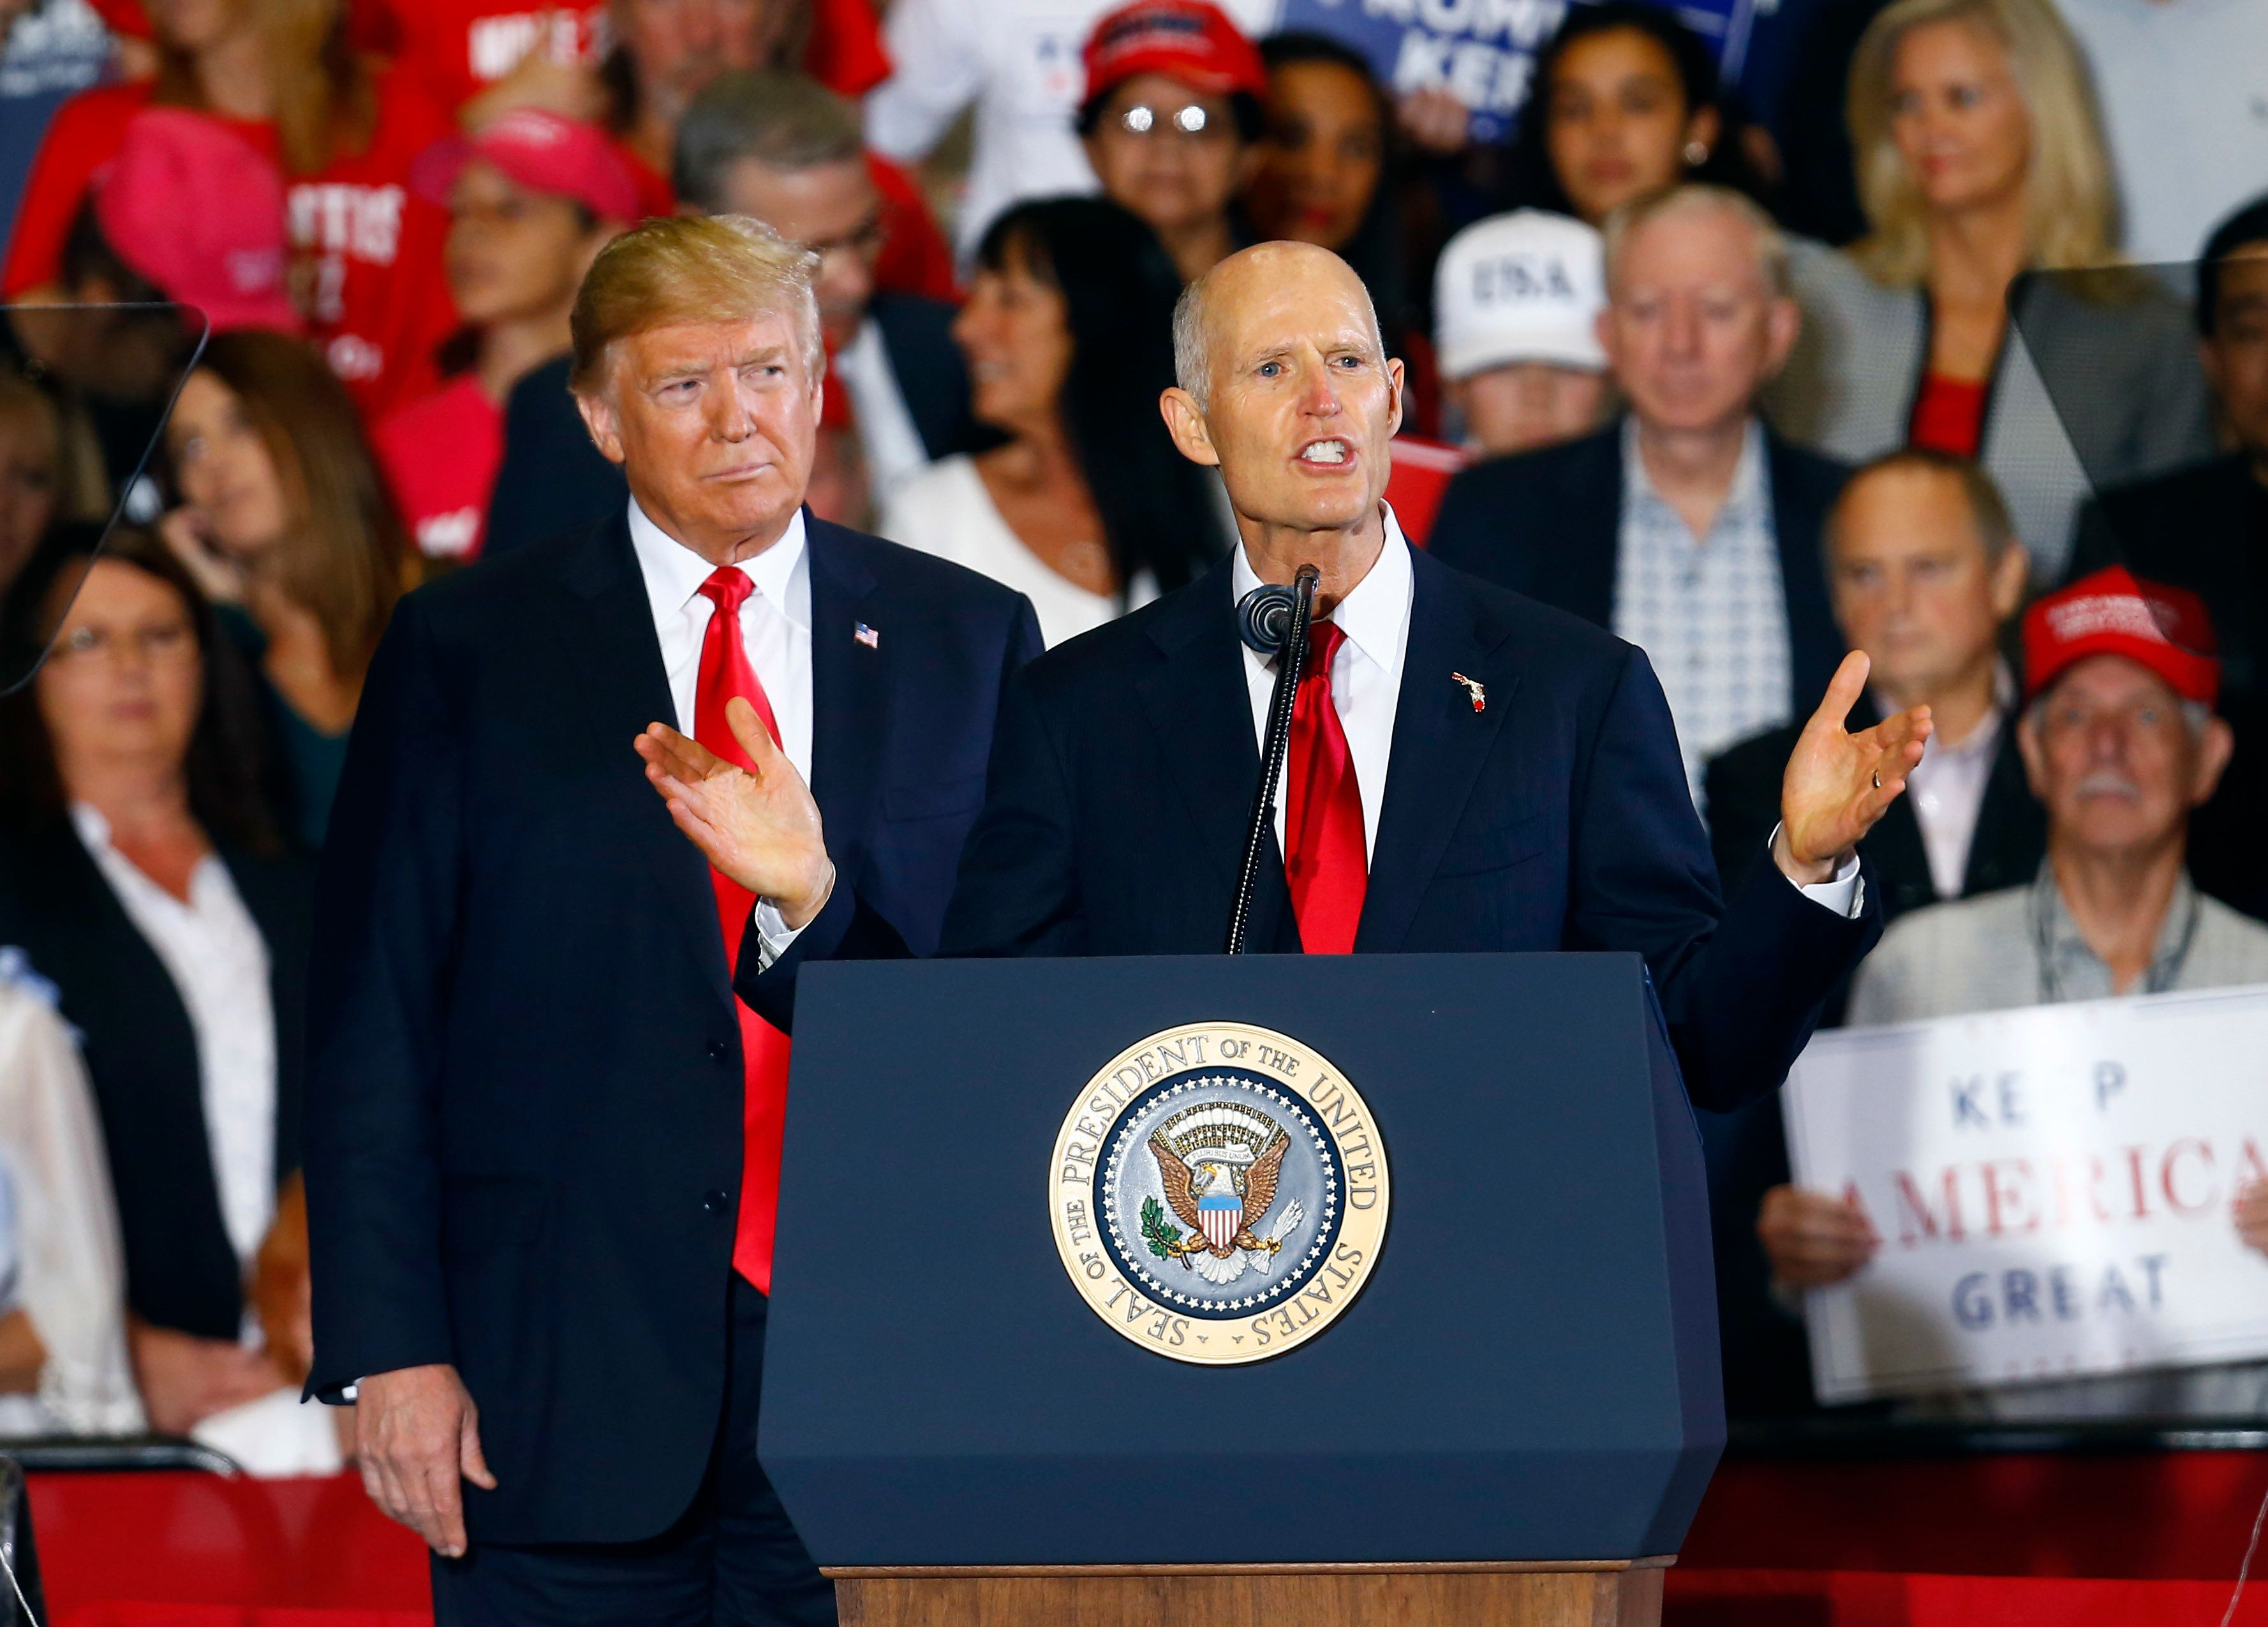 FILE- In this Nov. 3, 2018 file photo President Donald Trump stands behind Florida Governor Rick Scott as he speaks at a rally in Pensacola, Fla. Scott is challenging U.S. Senator Bill Nelson. Florida voters on Tuesday will elect a U.S. senator, a new governor, three Cabinet members and several new members of Congress while deciding to support or approve 12 proposed changes to the state's constitution. (AP Photo/Butch Dill, File)